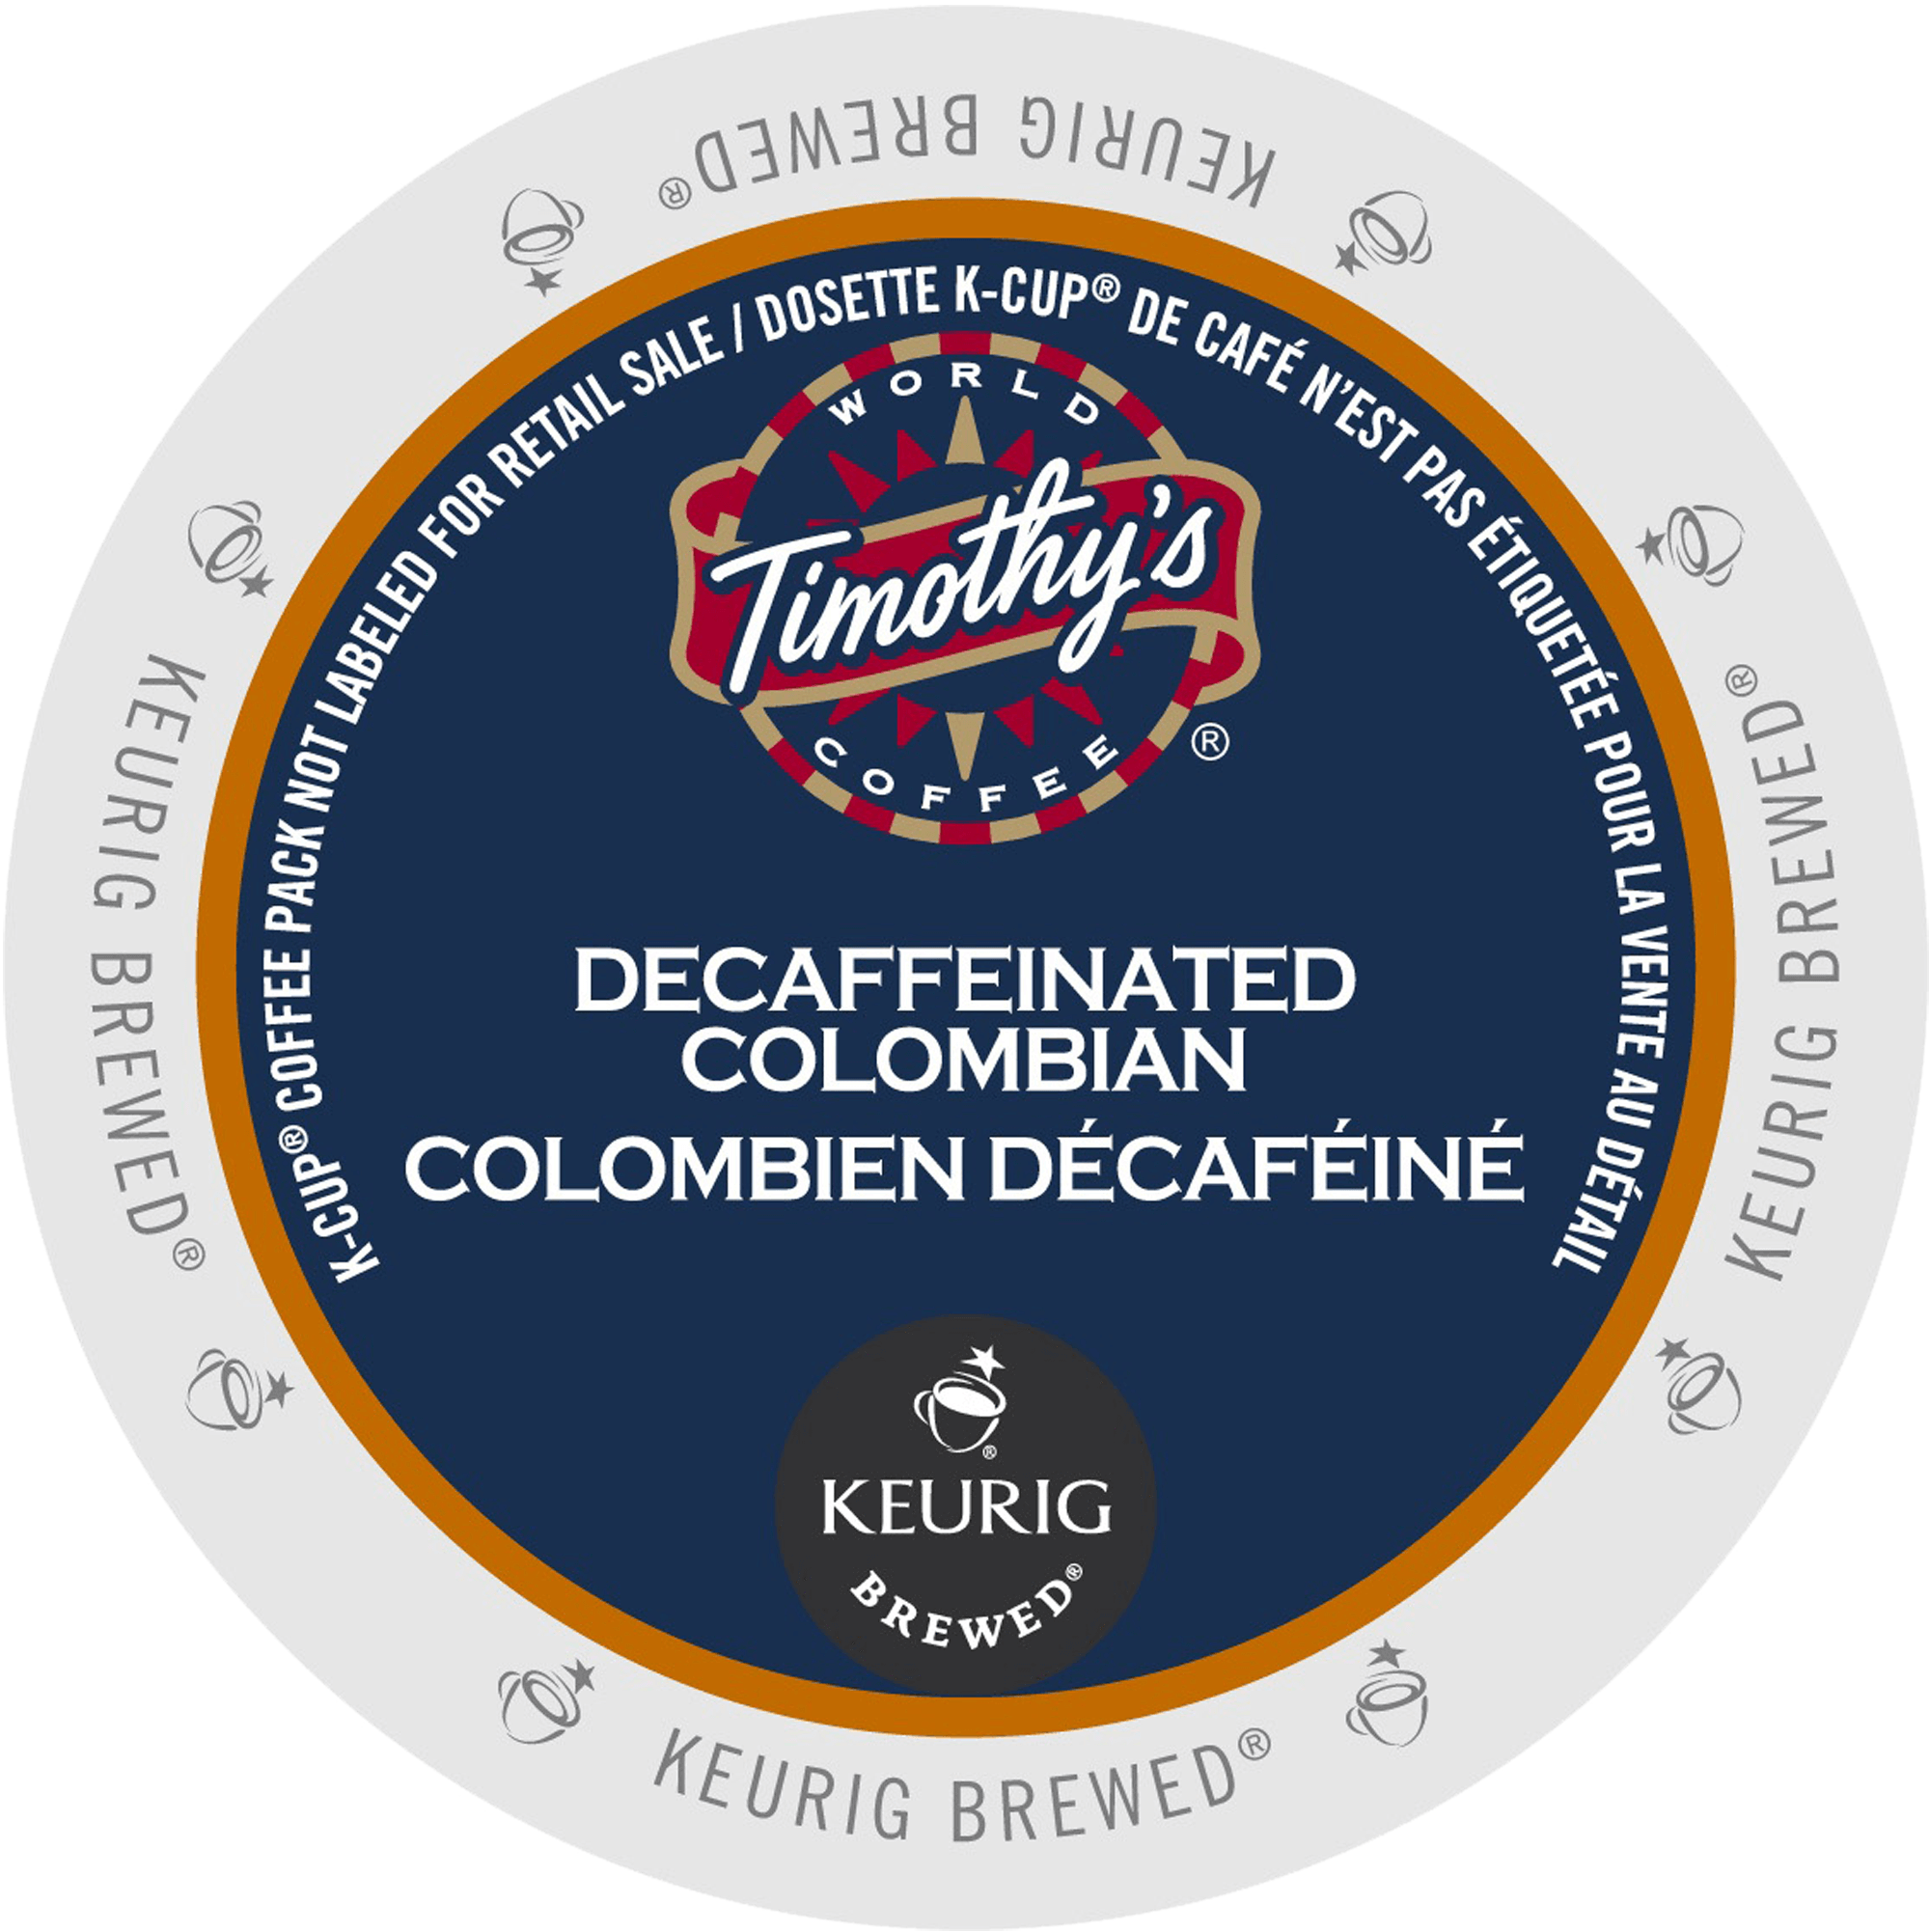 decaffeinated-colombian-coffee-timothys-k-cup_ca_general